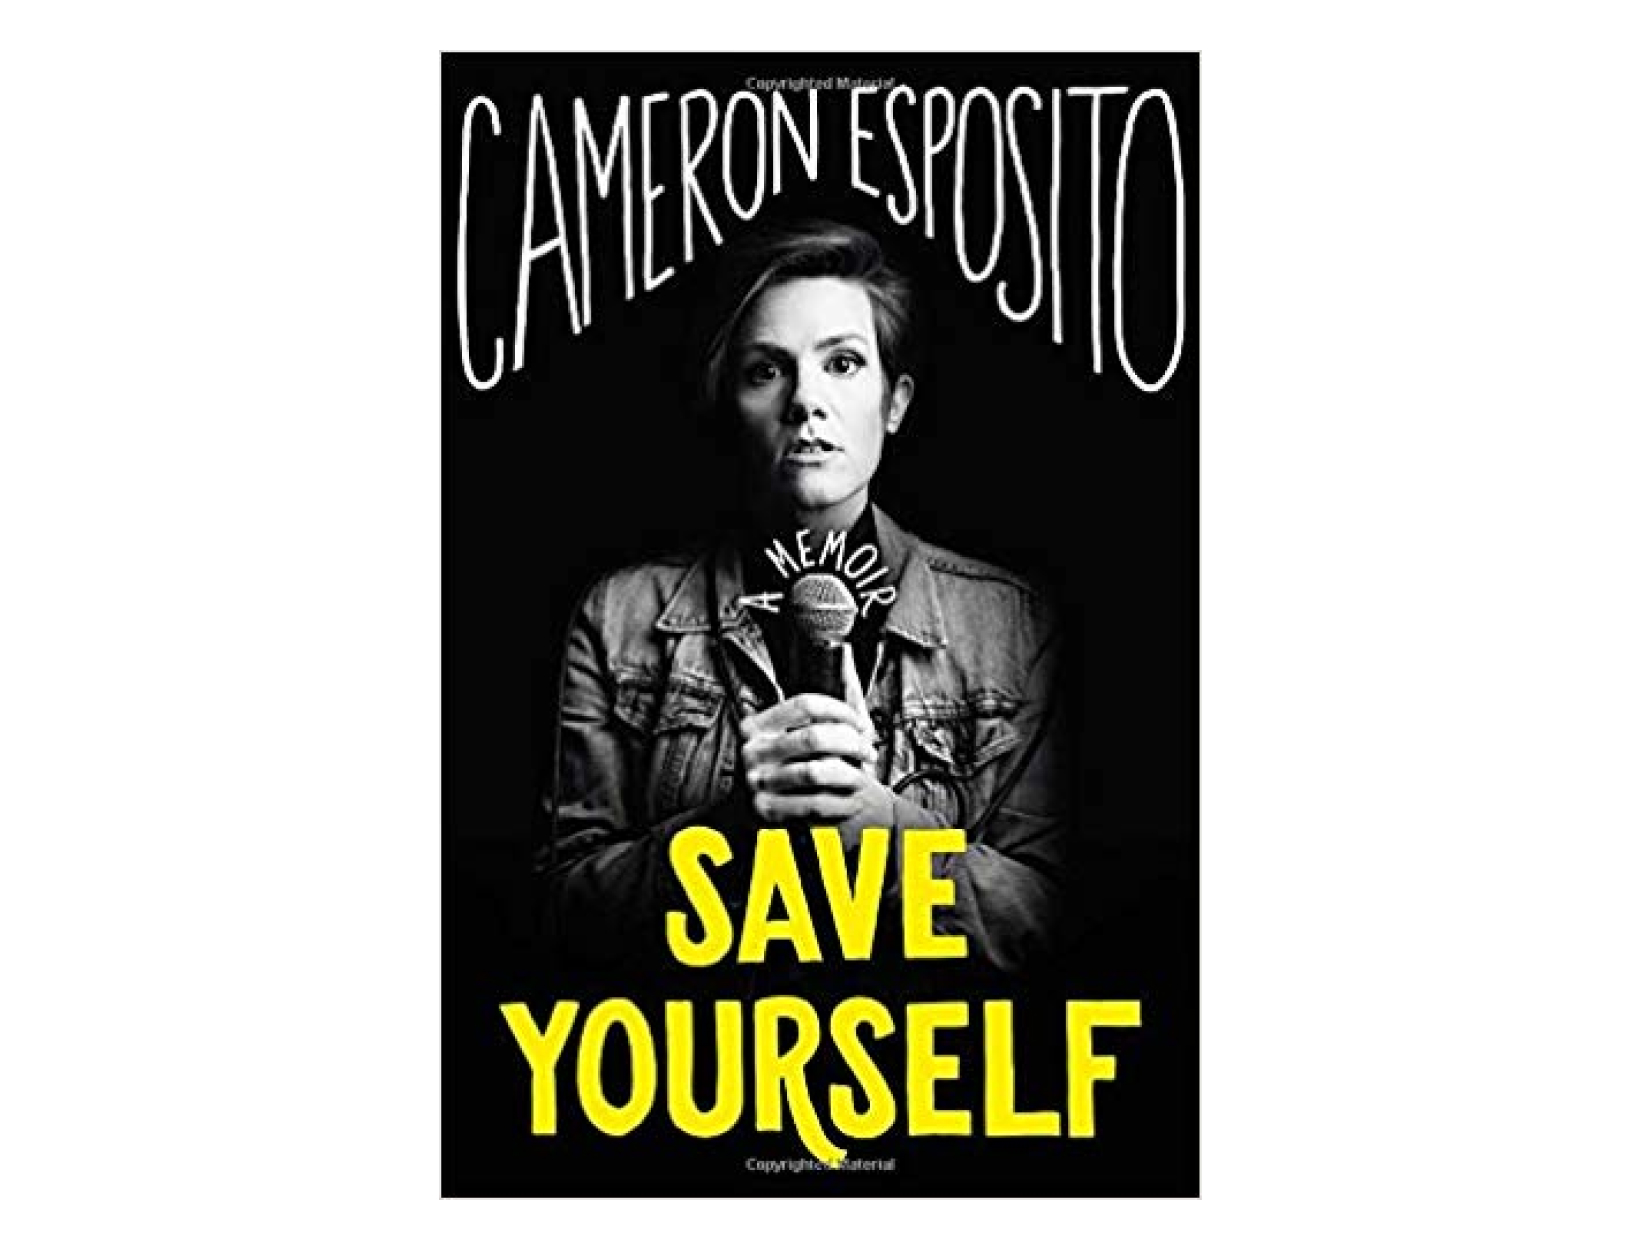 <em>Save Yourself</em> by Cameron Esposito